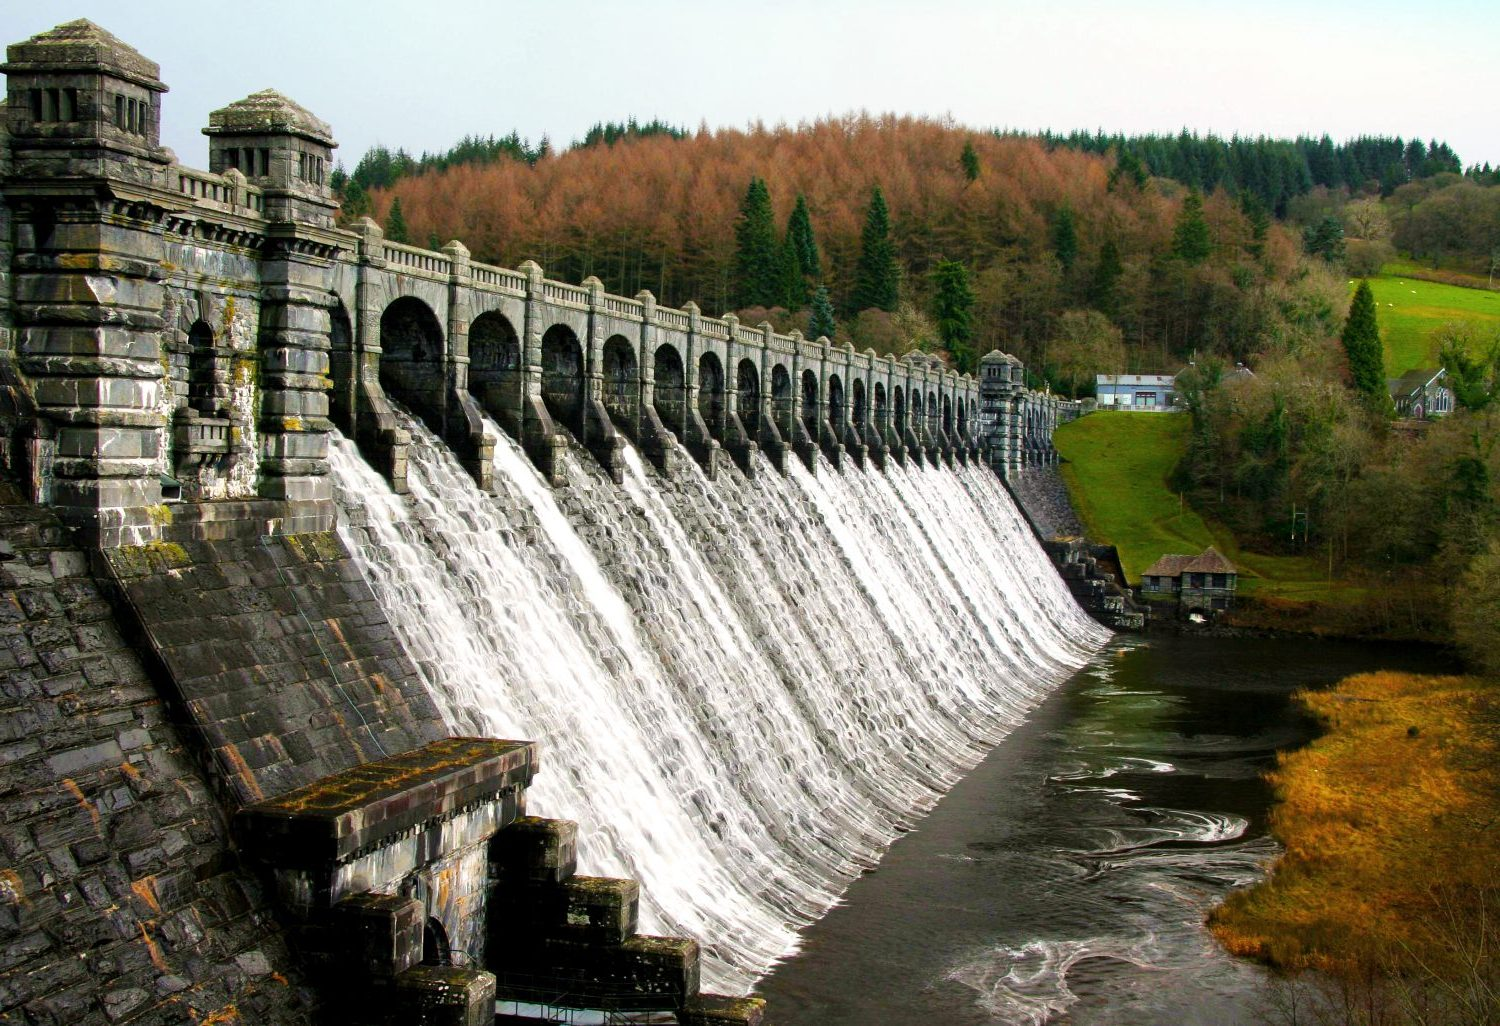 Evocative image: multiple trickles of water, regimented, carefully controlled, emerging from a dam.